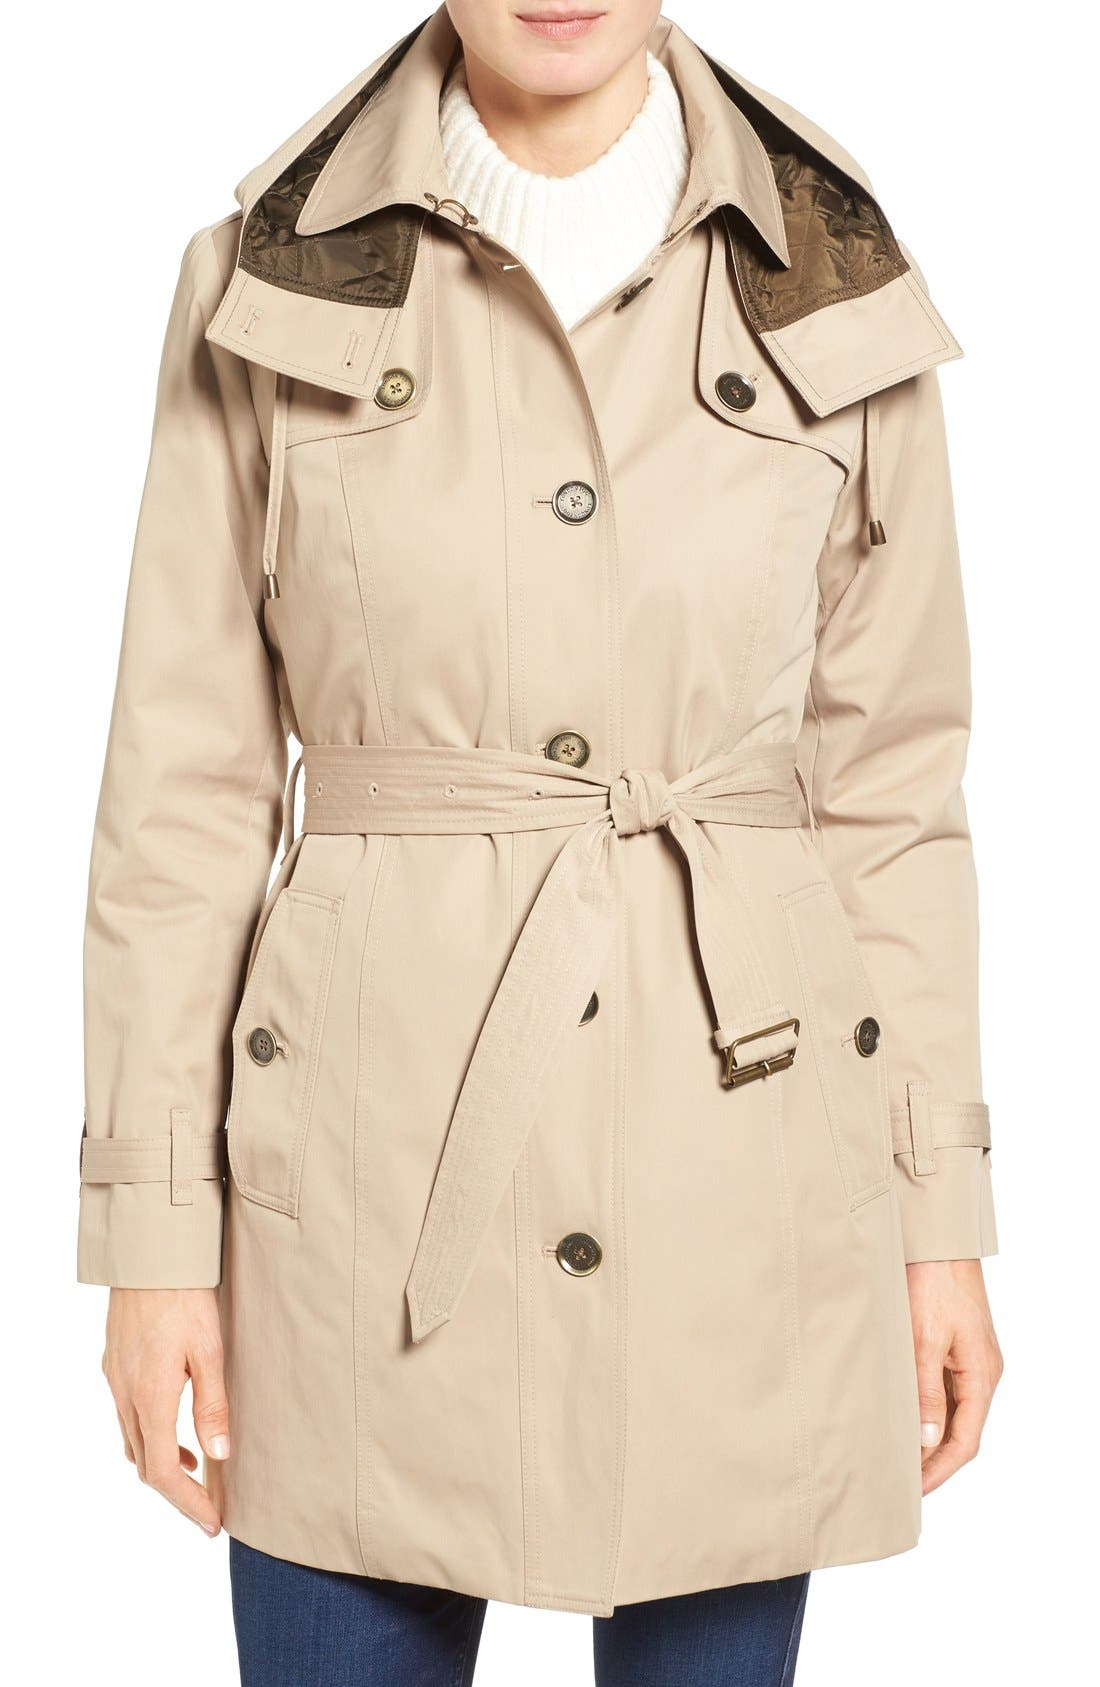 London Fog Single Breasted Trench Coat (Regular & Petite)